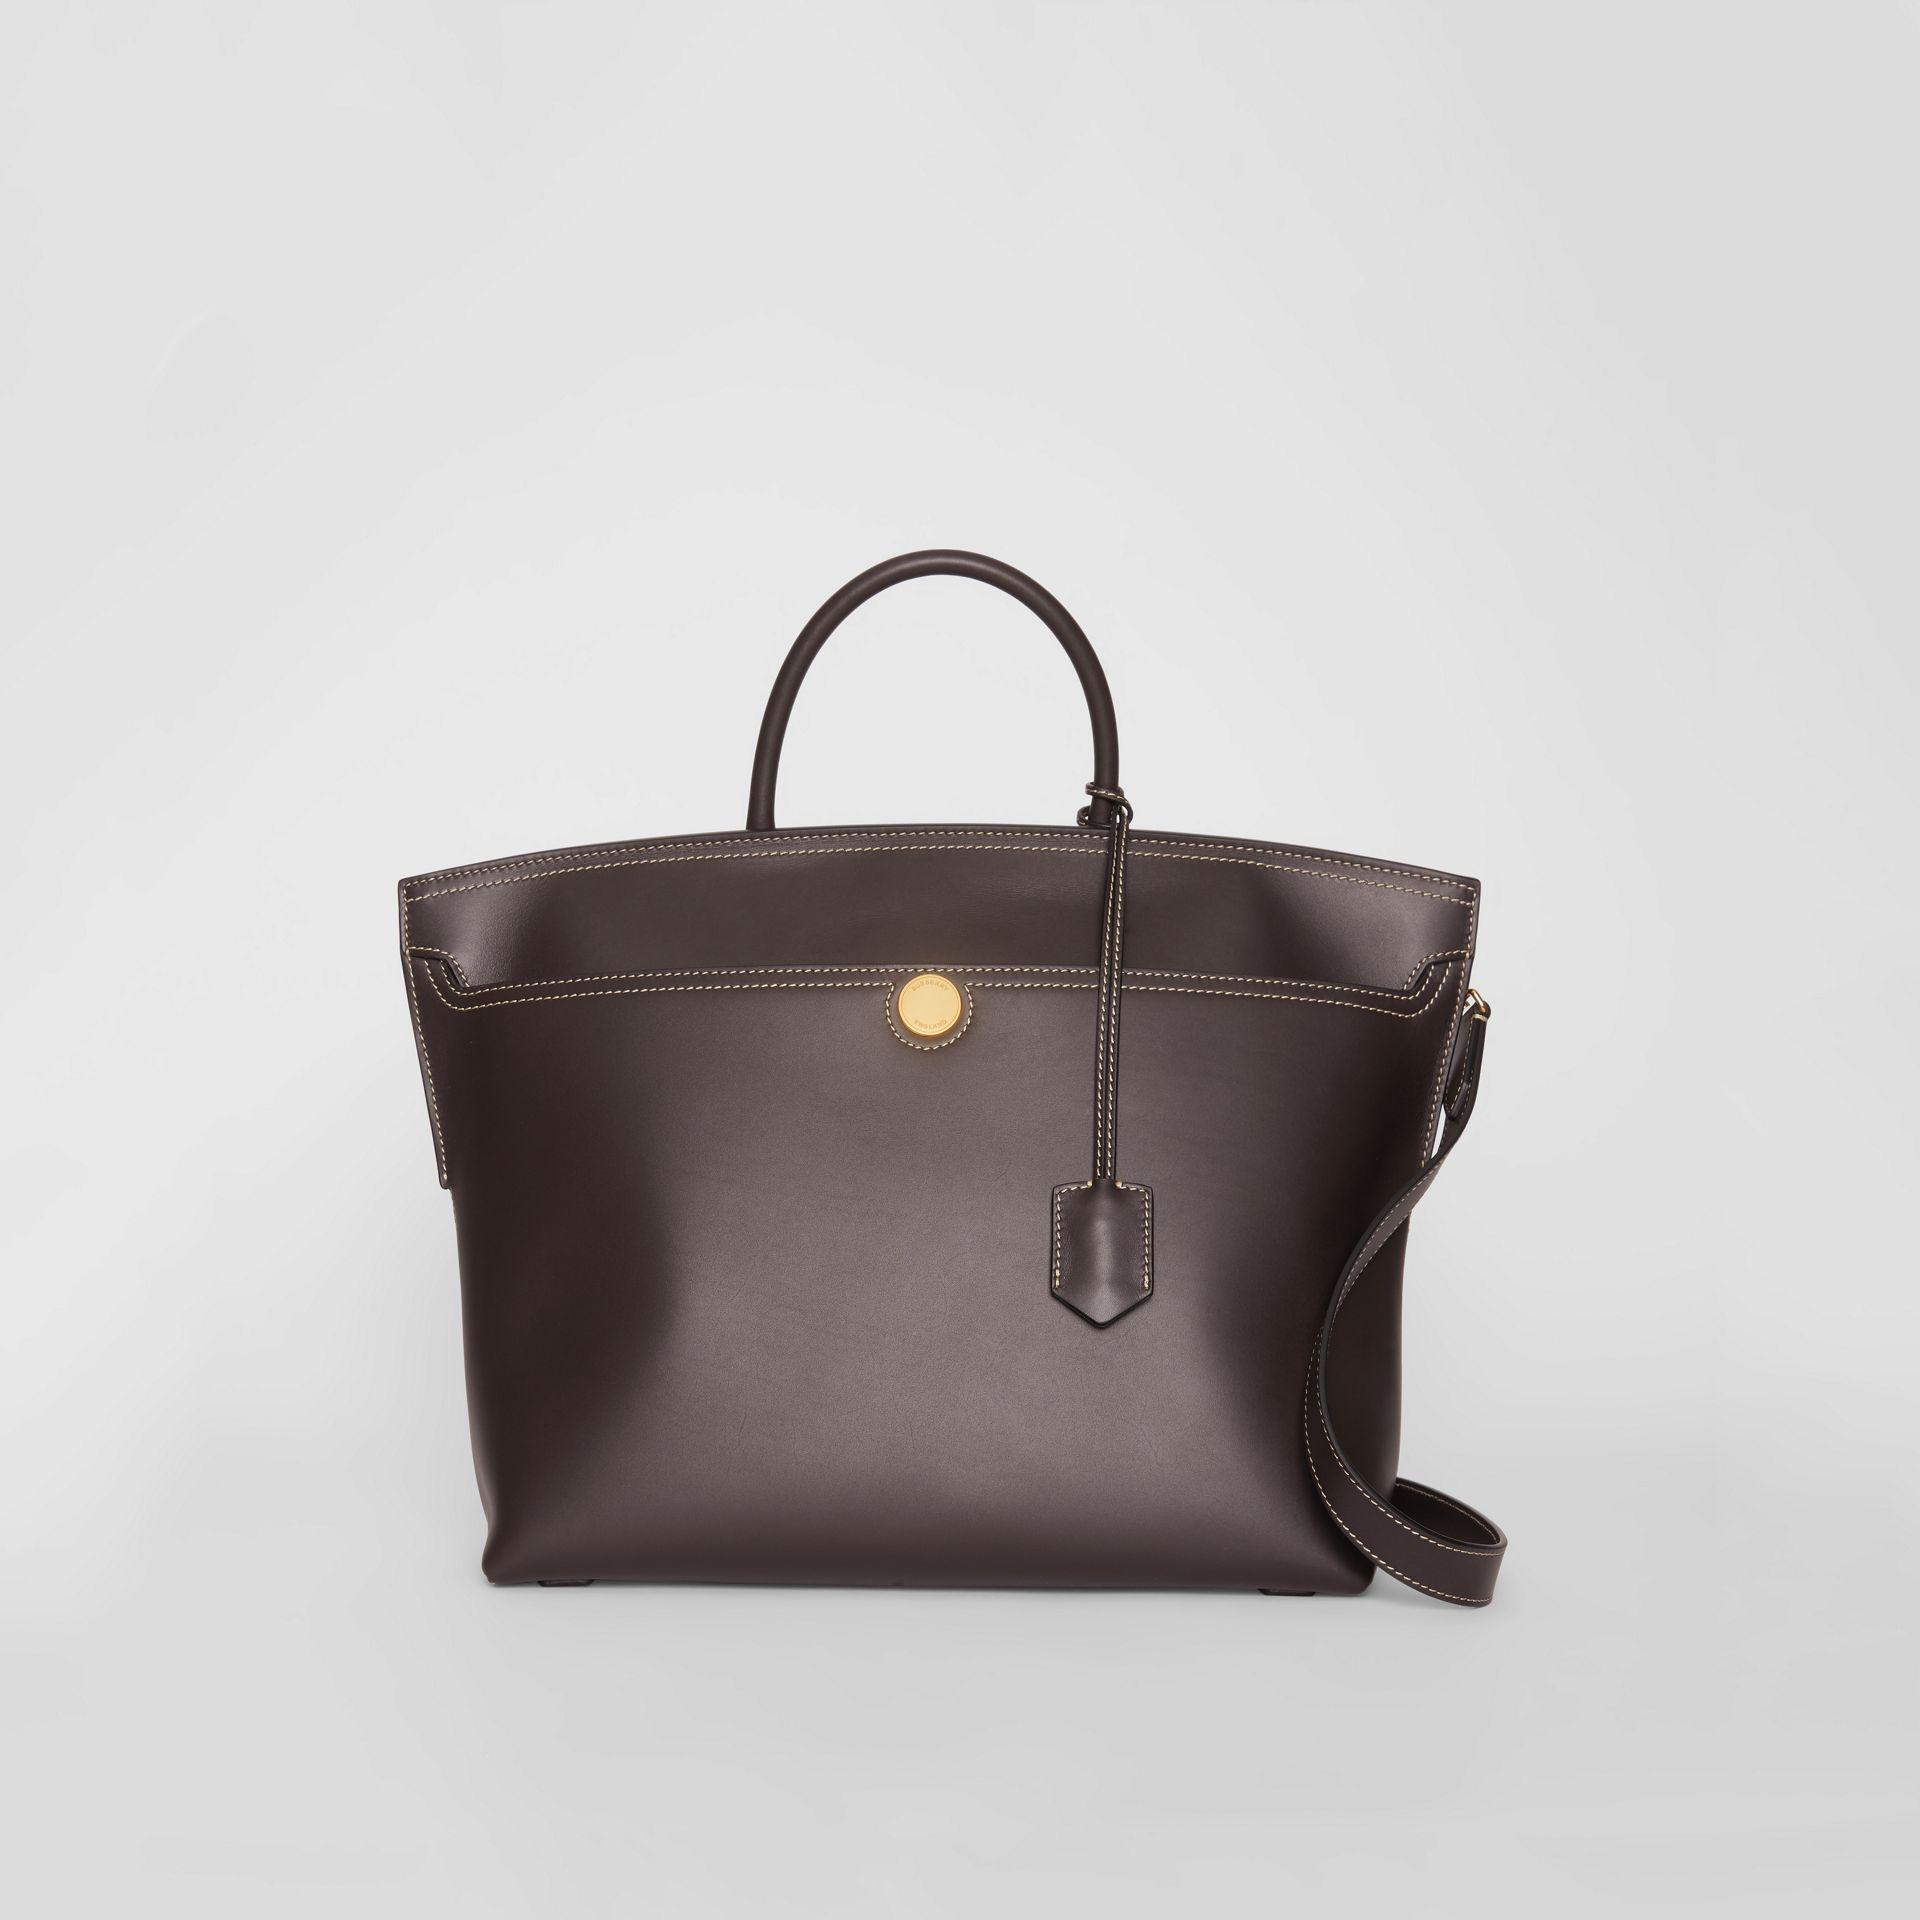 ca5abbd50a Lyst - Burberry Leather Society Top Handle Bag in Brown